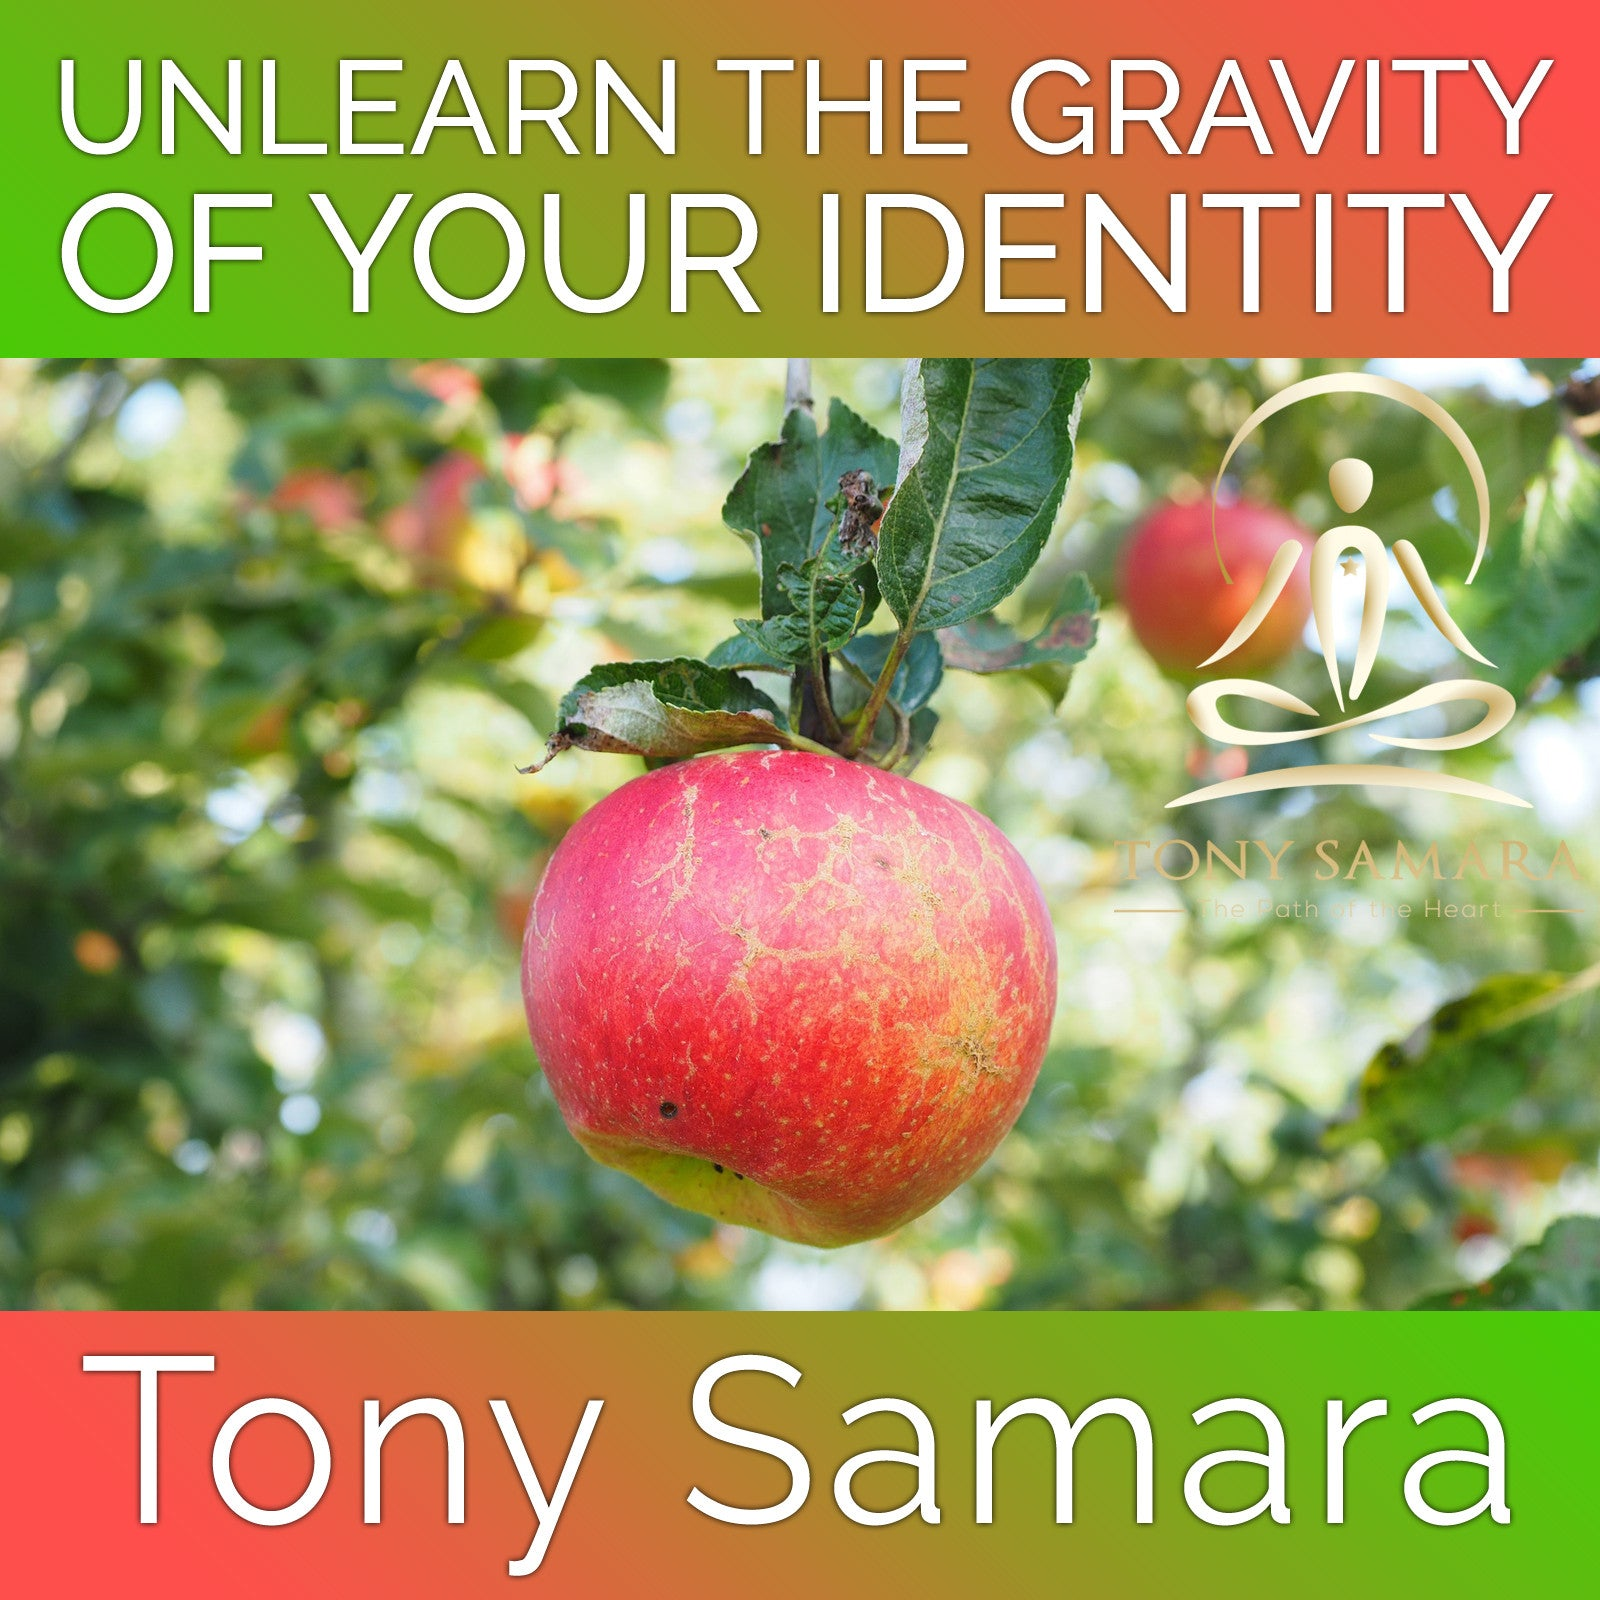 Unlearn the Gravity of Your Identity (MP3 Audio Download) - Tony Samara Meditation